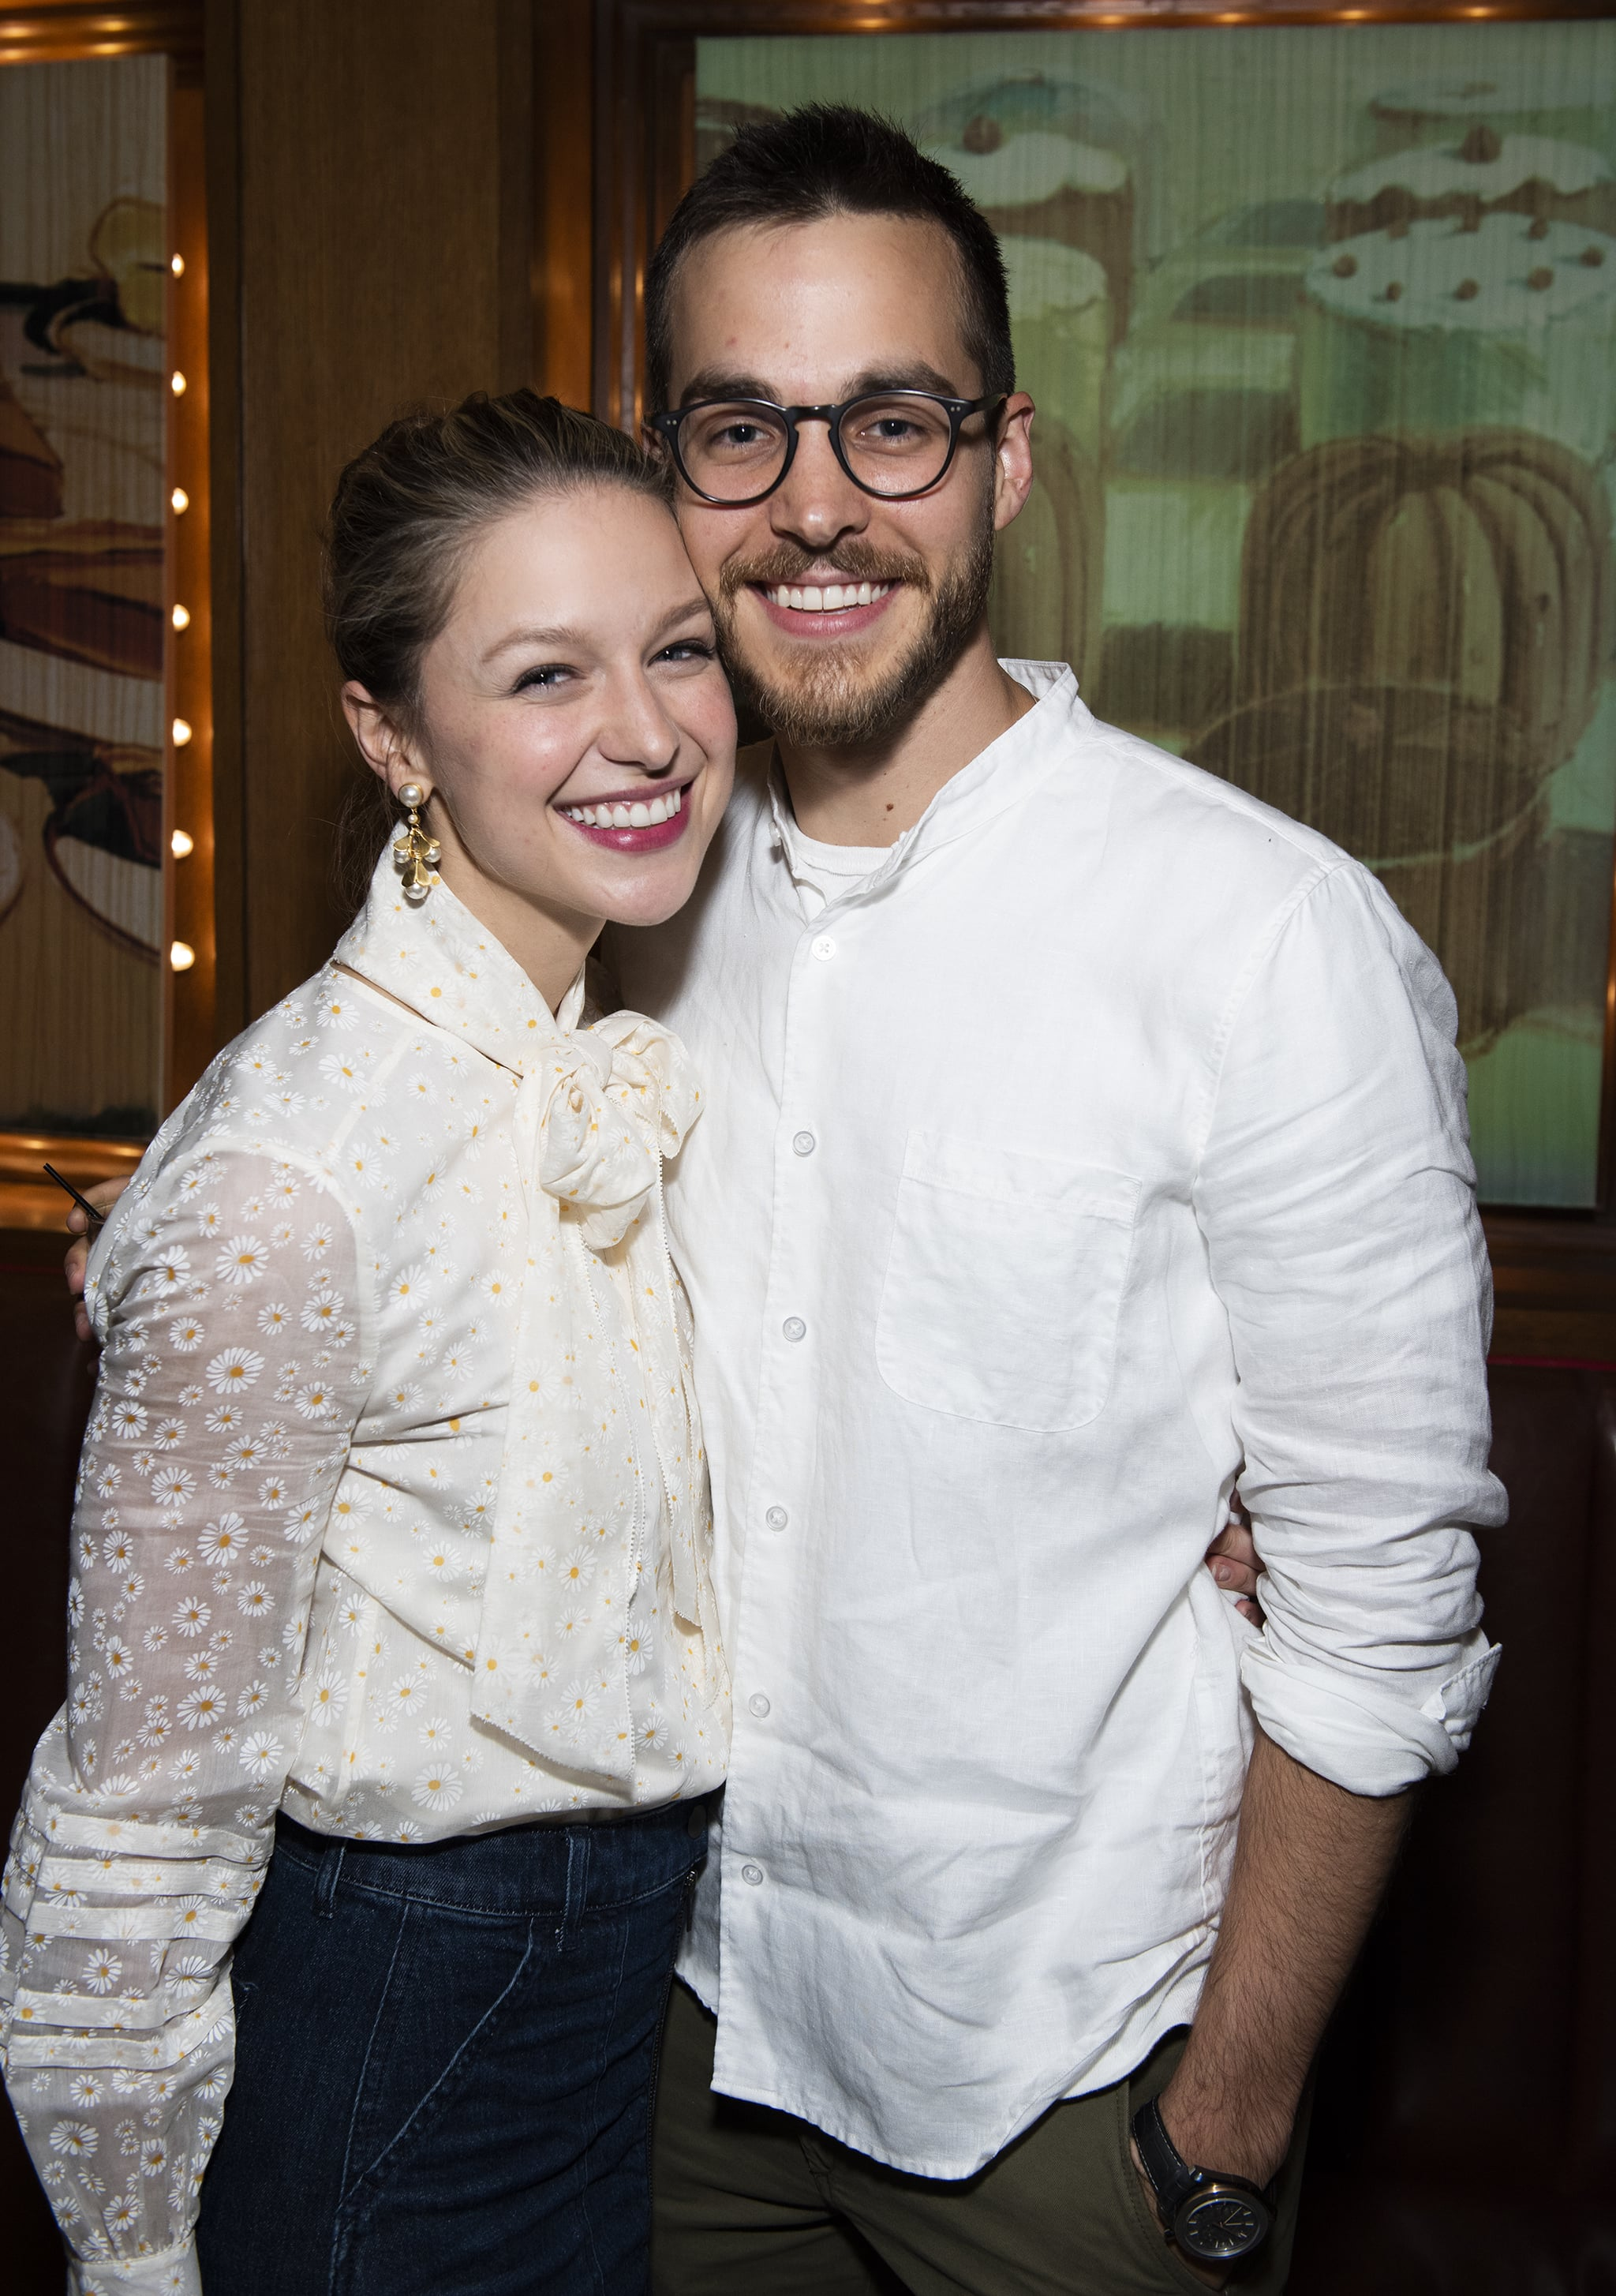 Supergirl Costars Chris Wood and Melissa Benoist Are Married